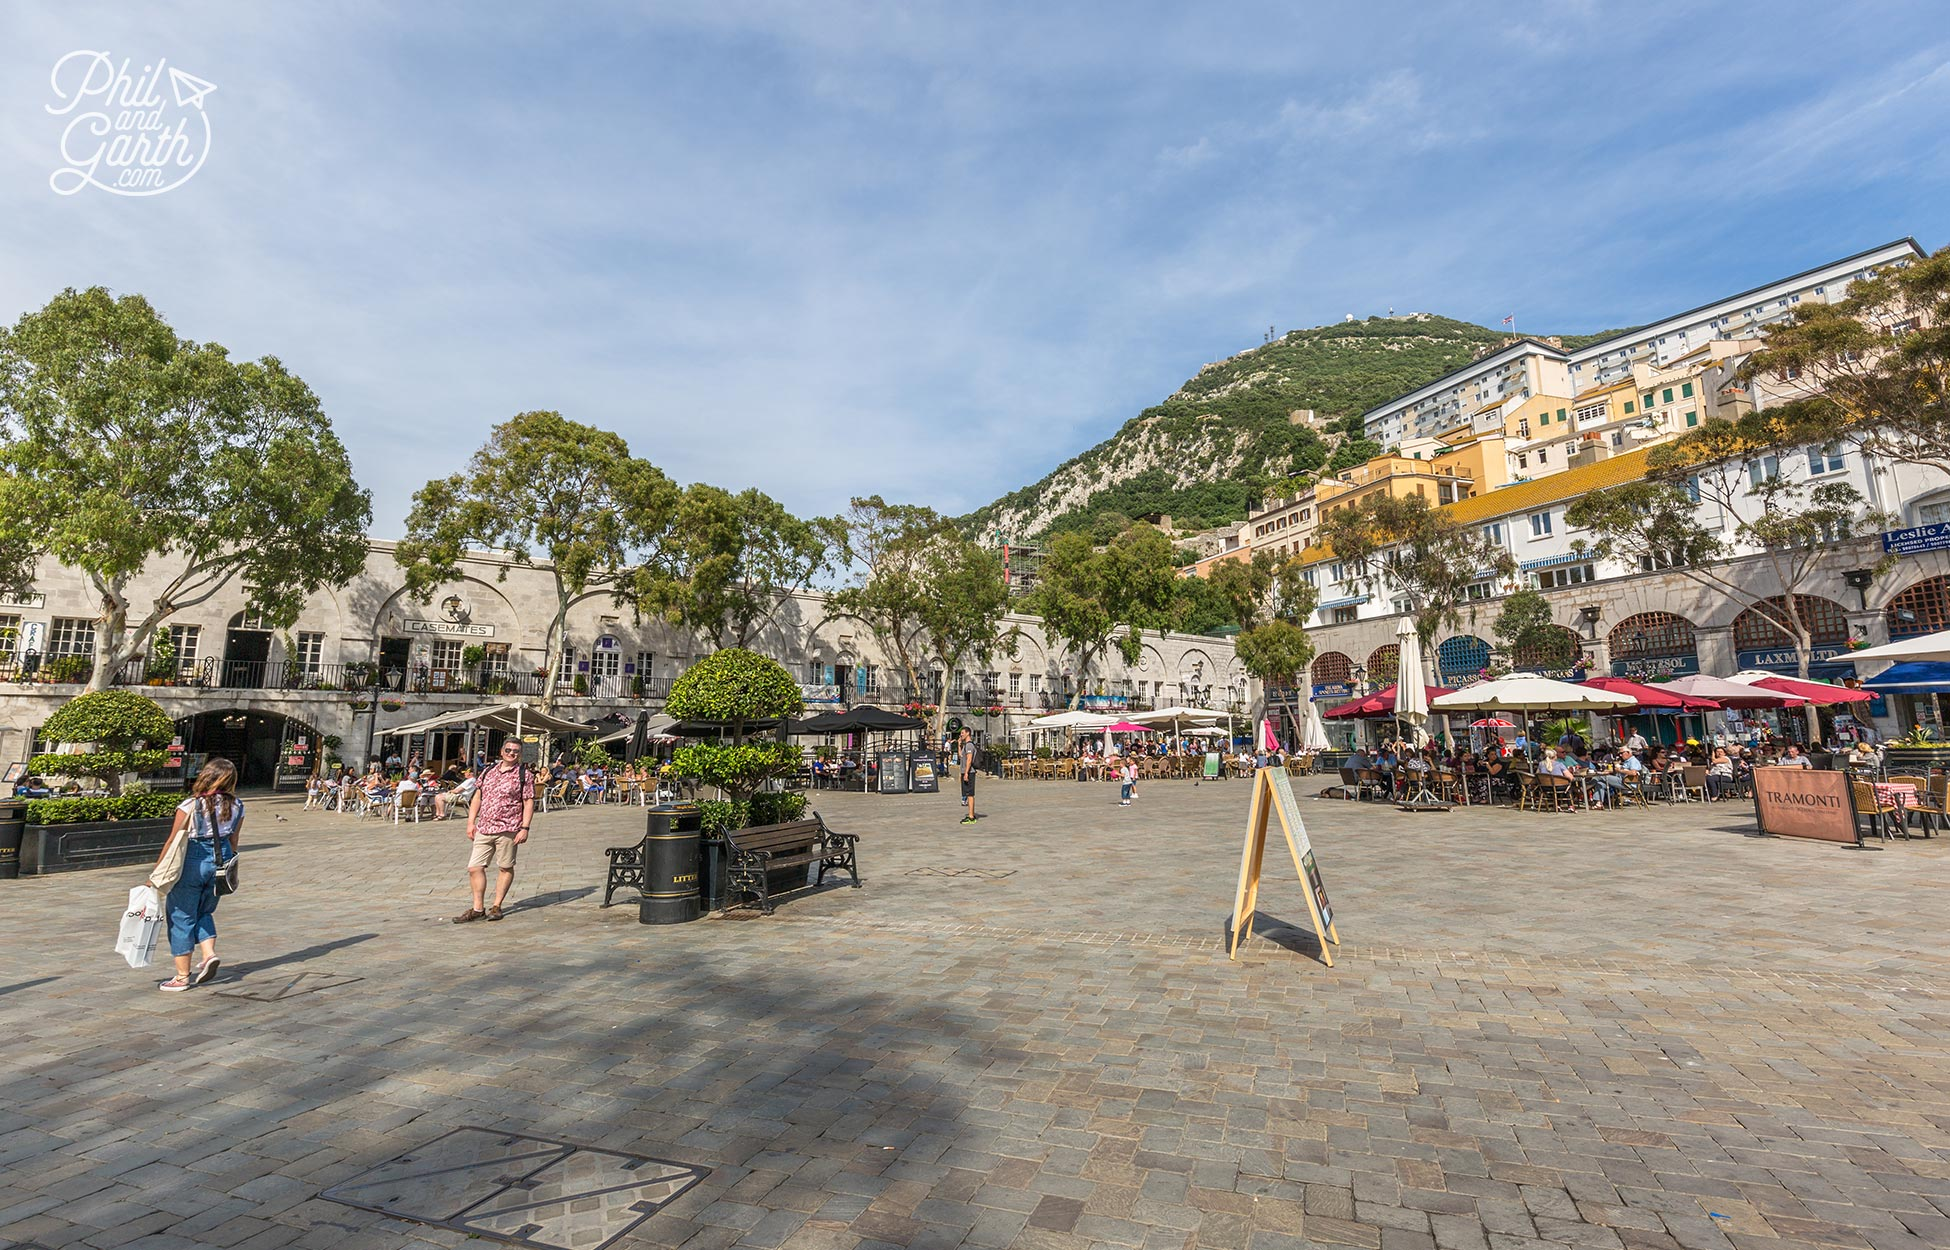 The cafe culture of Casemates Square